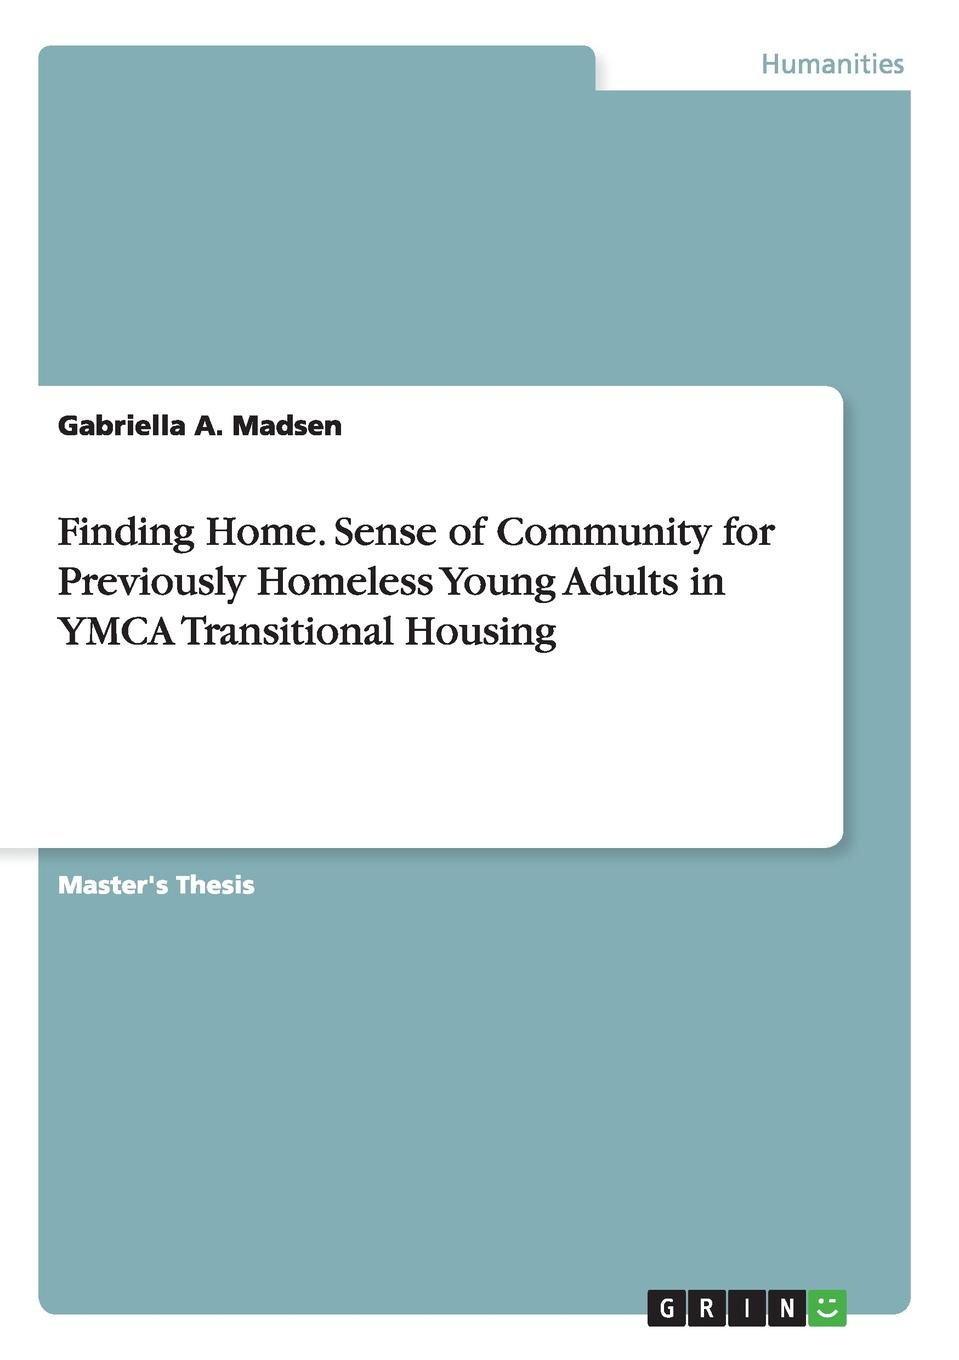 Gabriella A. Madsen Finding Home. Sense of Community for Previously Homeless Young Adults in YMCA Transitional Housing christine whitehead social housing in europe